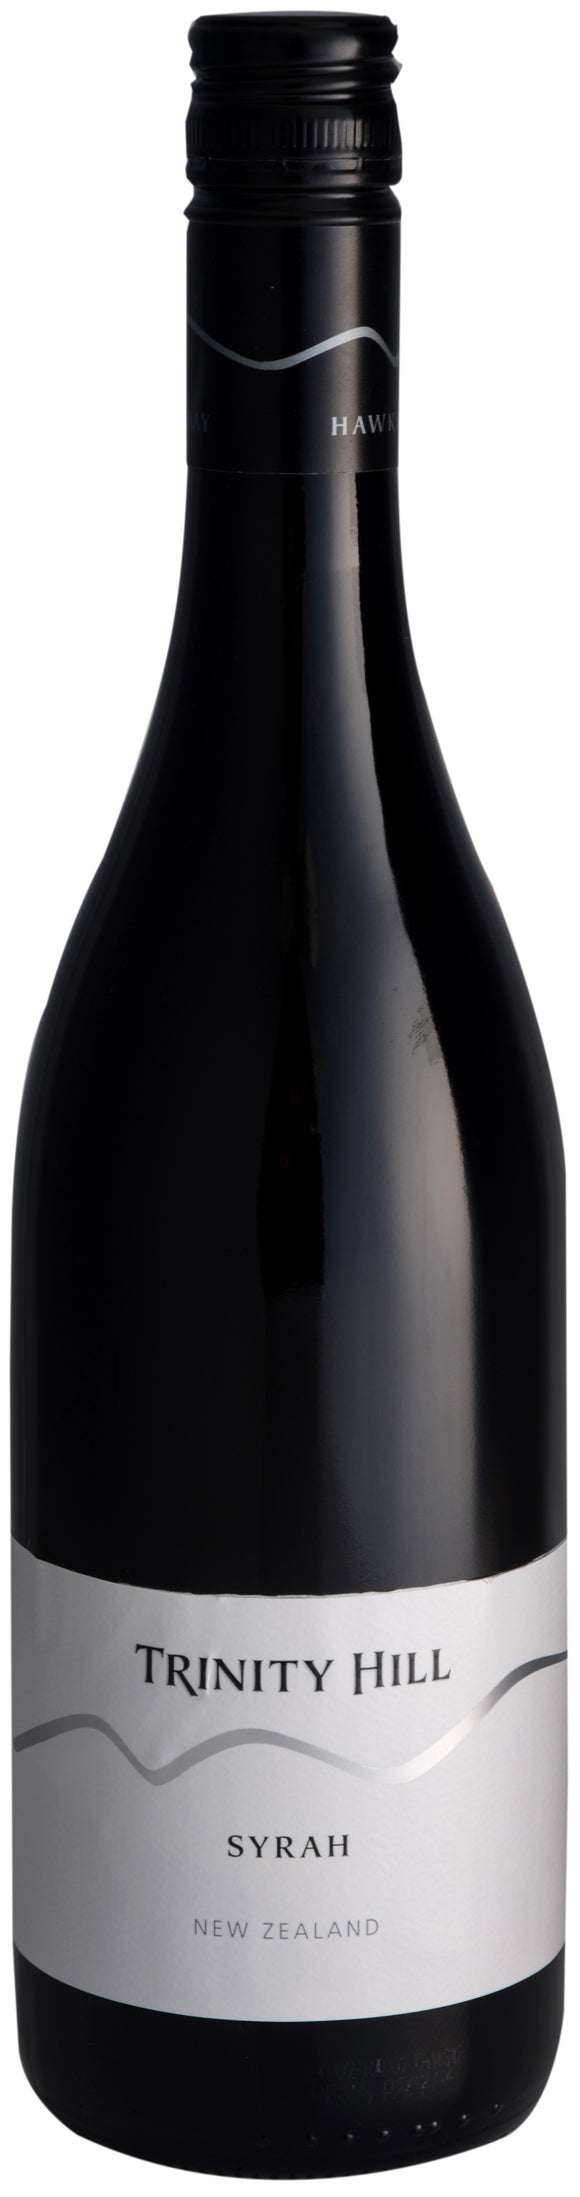 Trinity Hill Syrah, Hawkes Bay, New Zealand